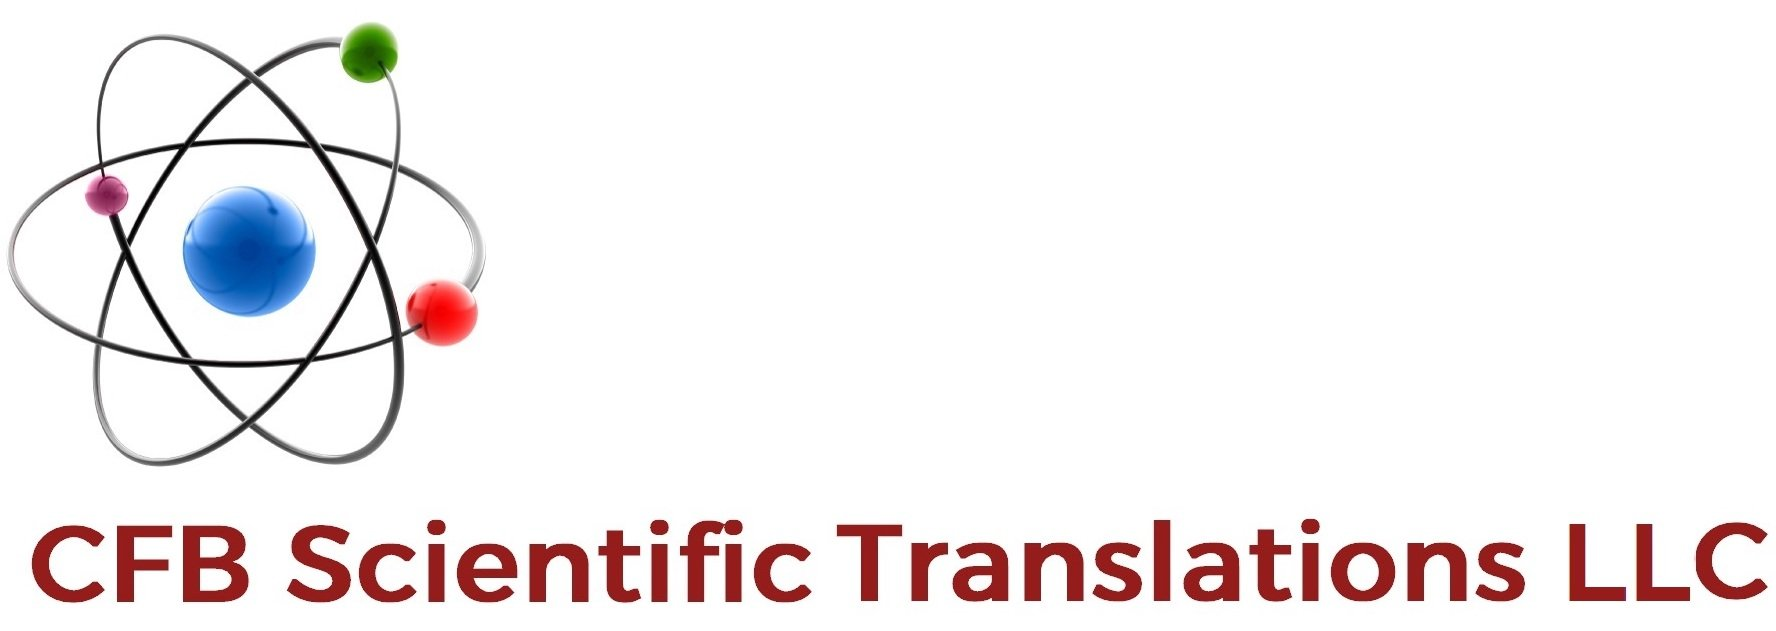 CFB Scientific Translations and Consulting